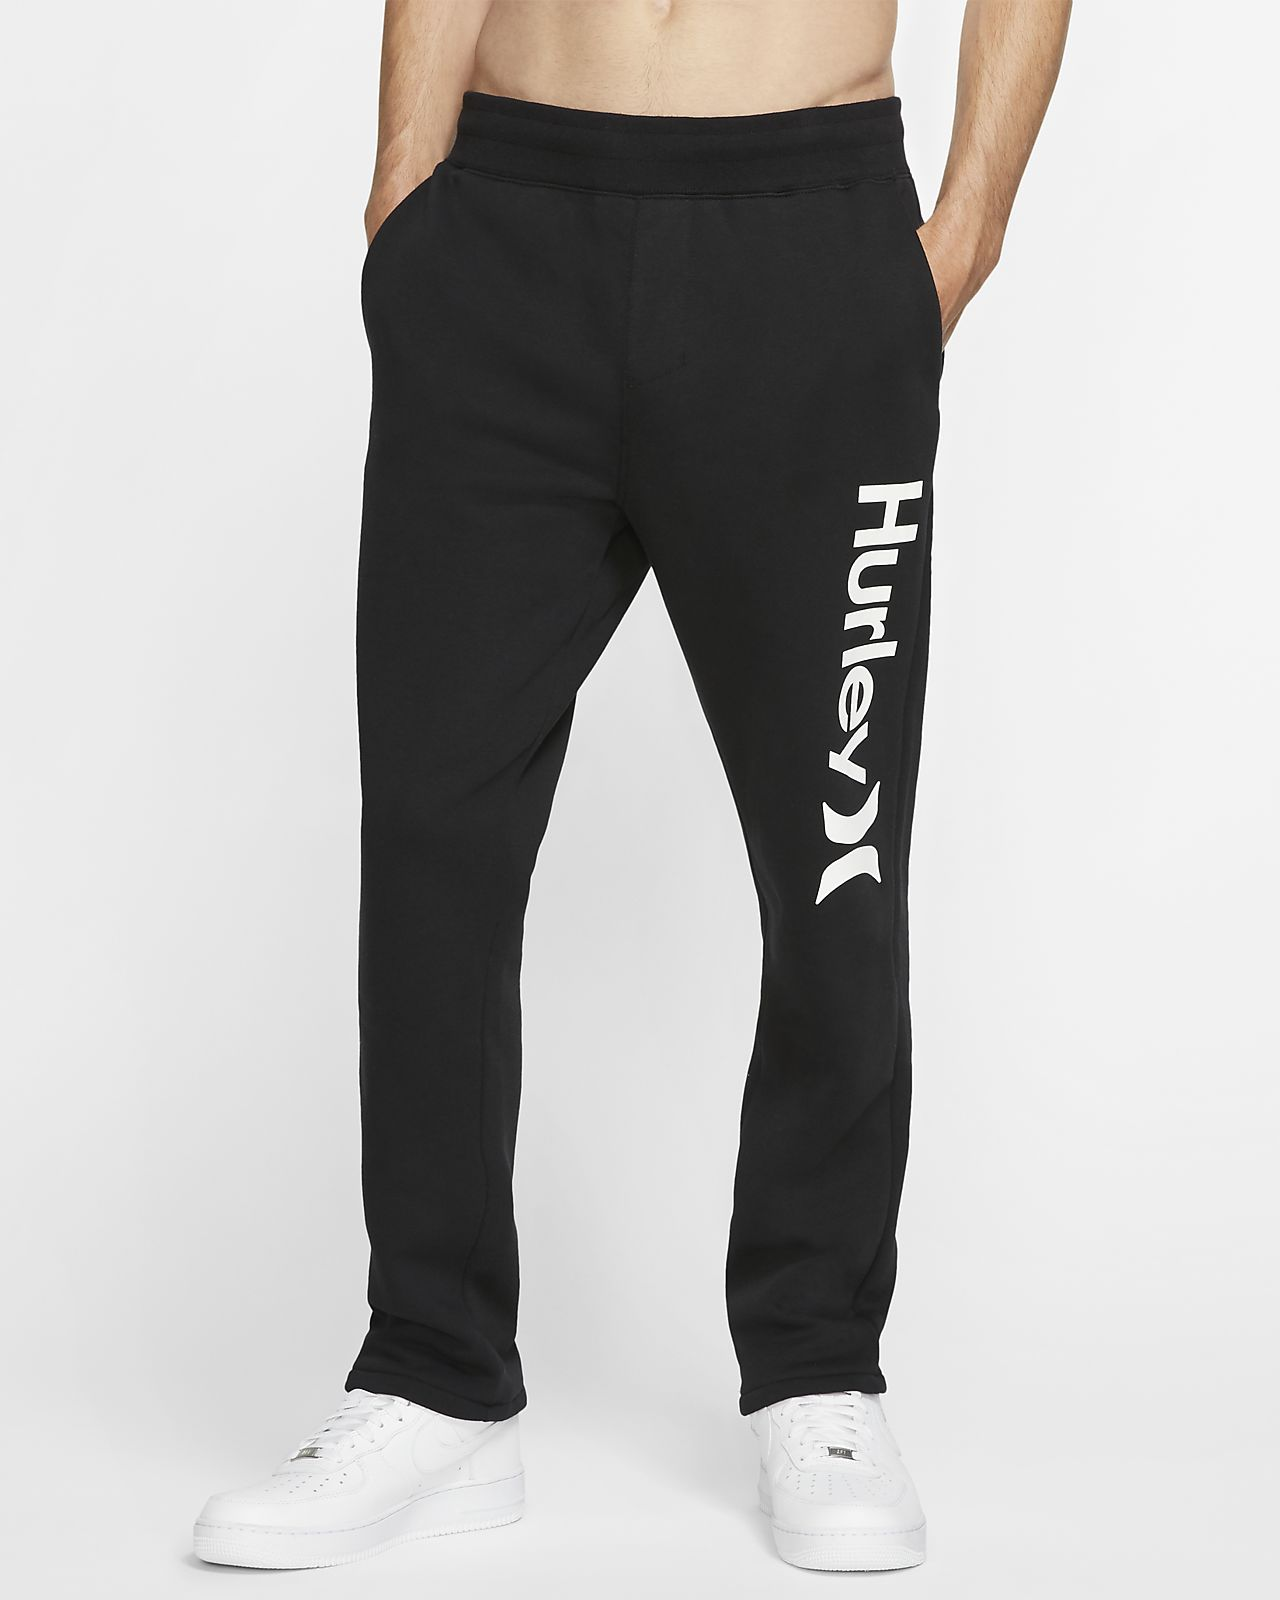 Pantalones de entrenamiento de tejido Fleece para hombre Hurley Surf Check One And Only